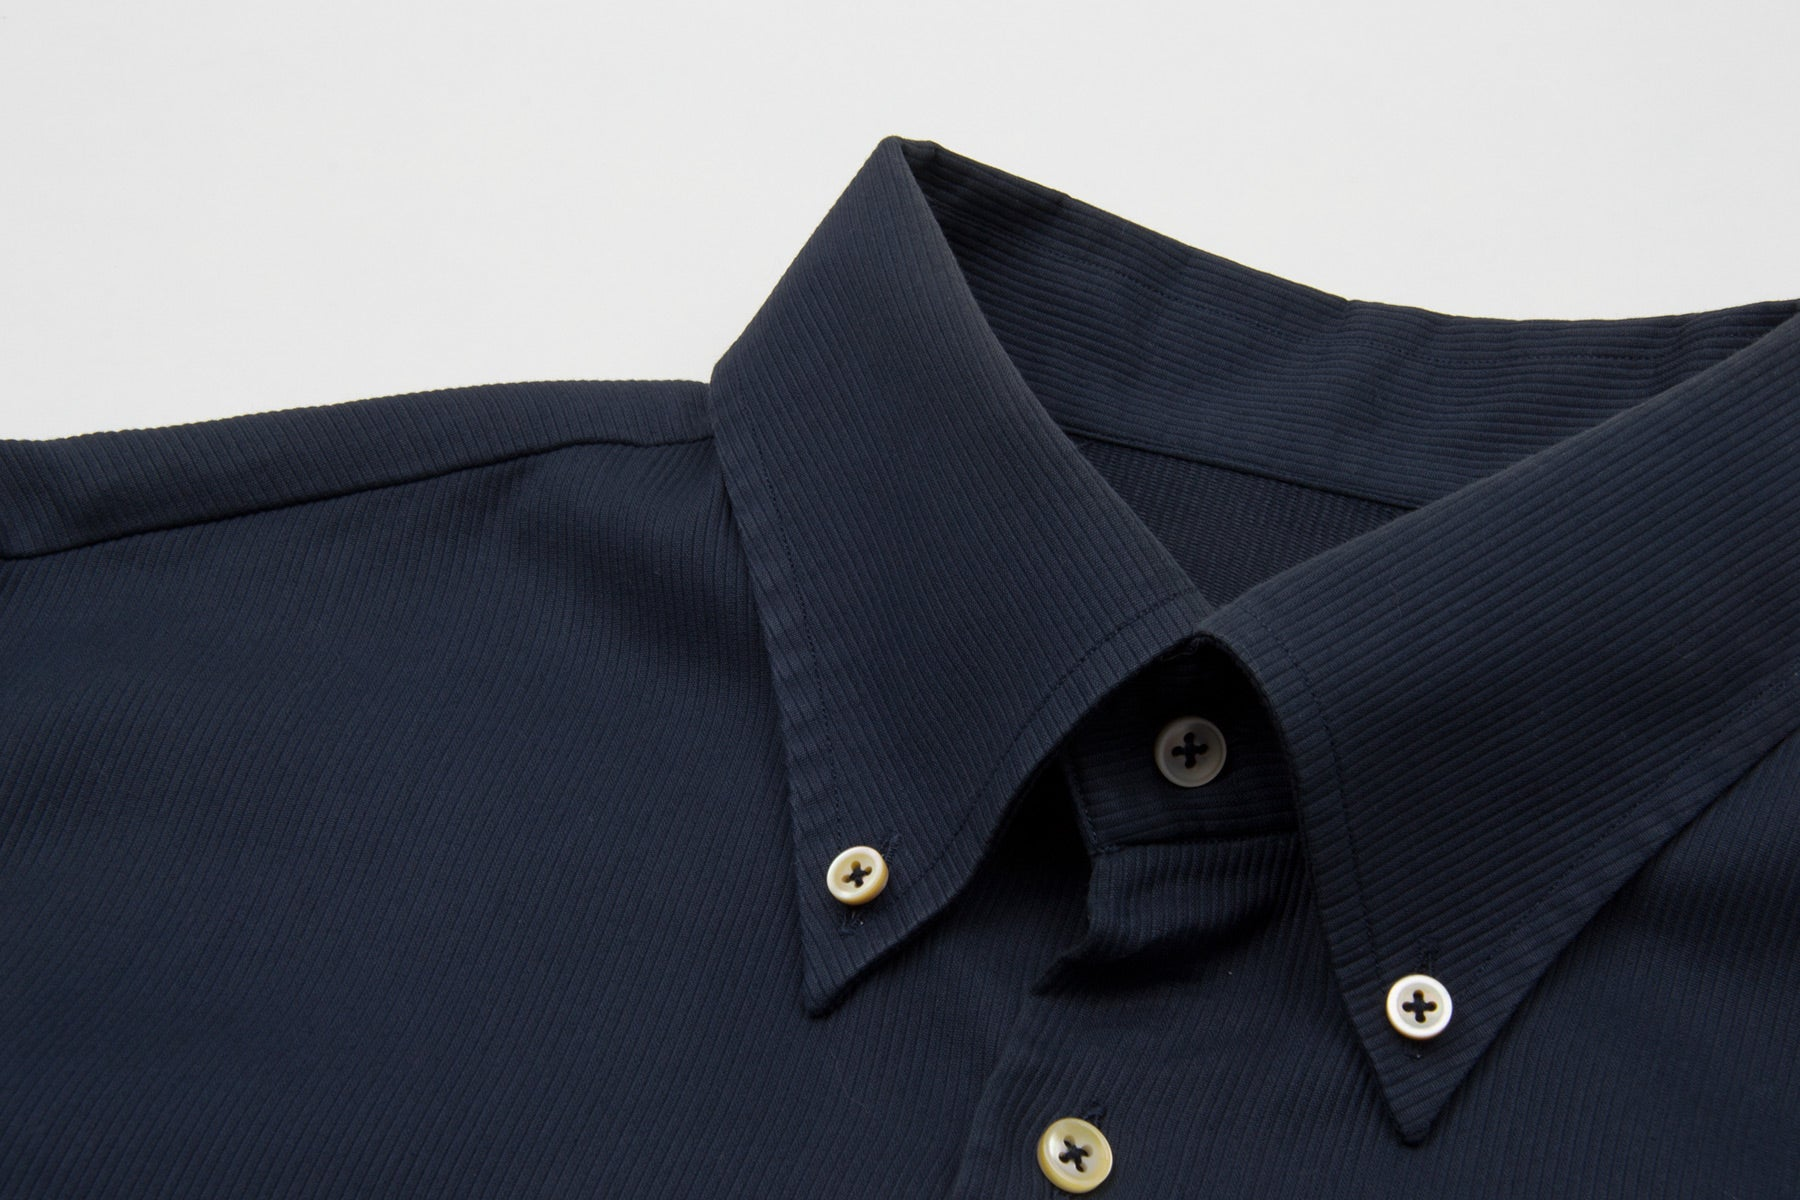 2005 S/S LONG-SLEEVE SHIRT WITH 70's COLLAR